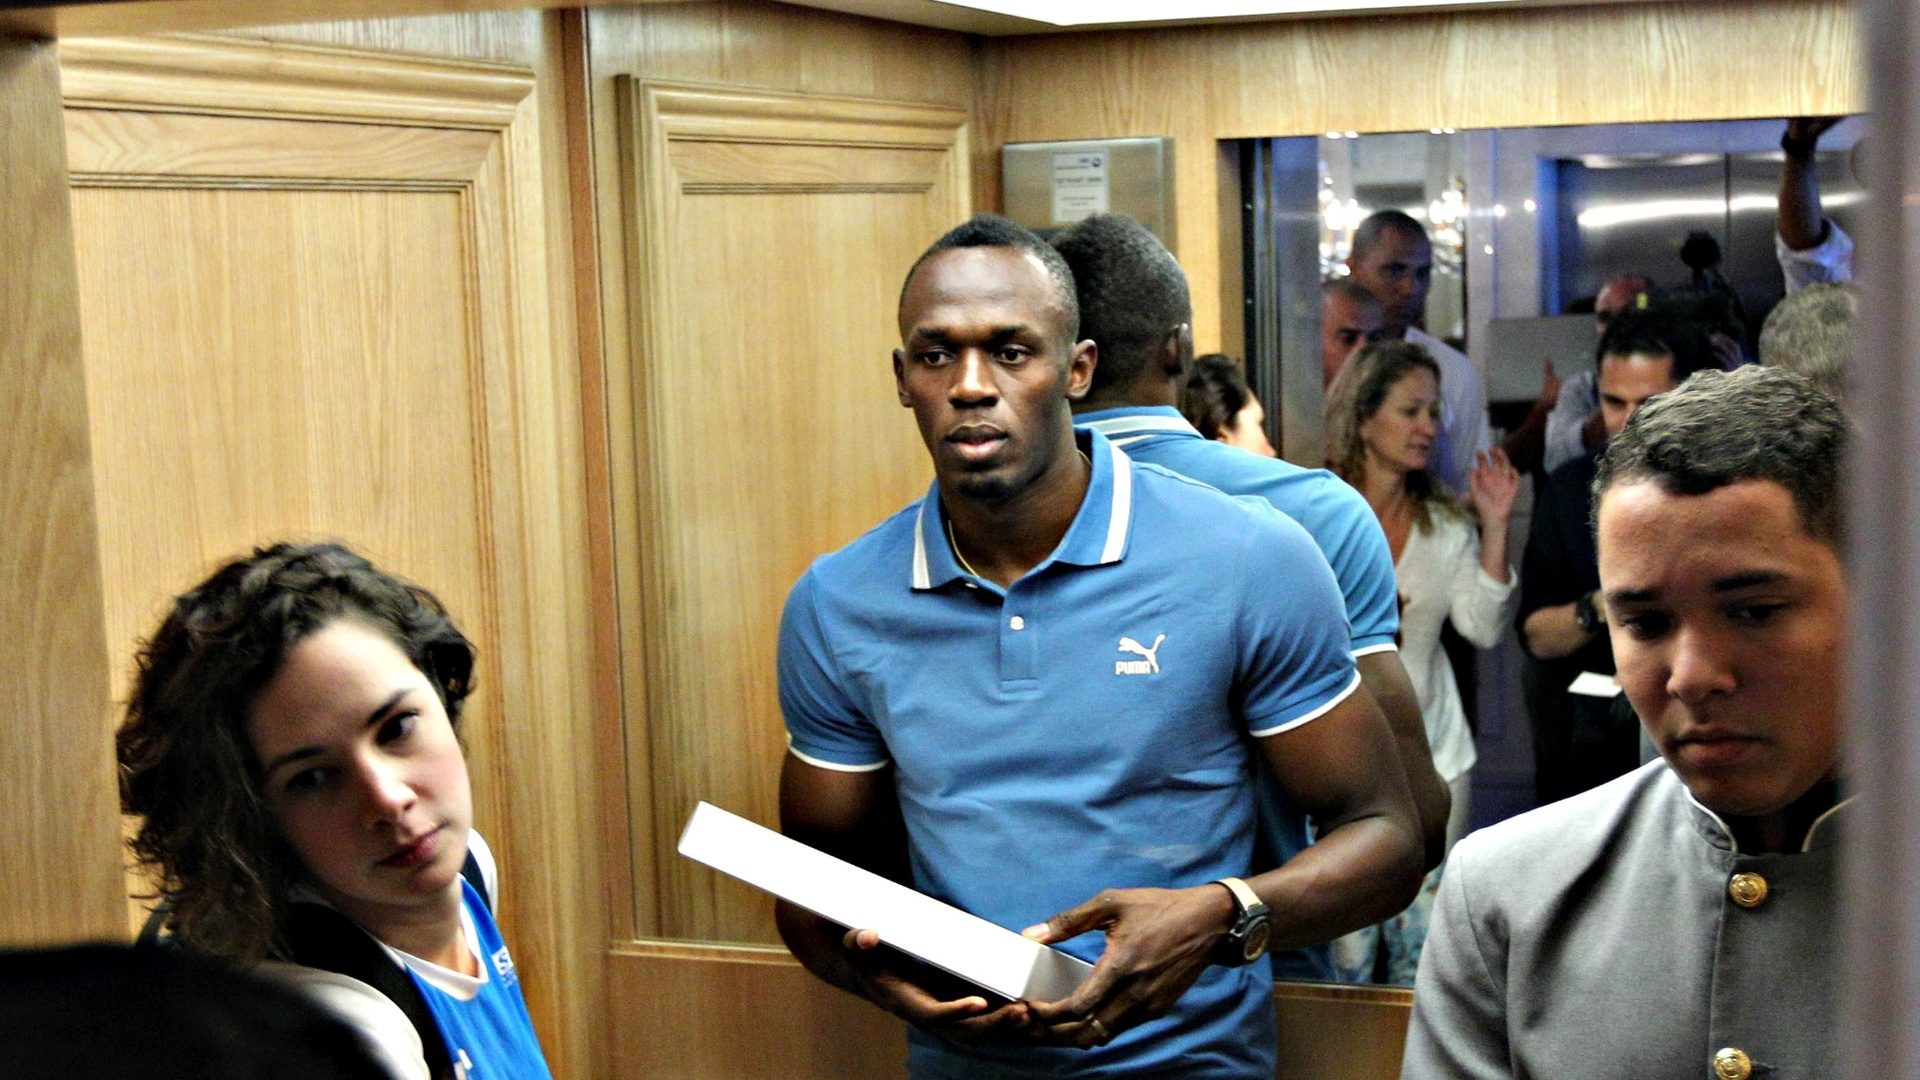 28.mar.2013 - Usain Bolt entra em elevador aps conceder entrevista coletiva no Rio de Janeiro